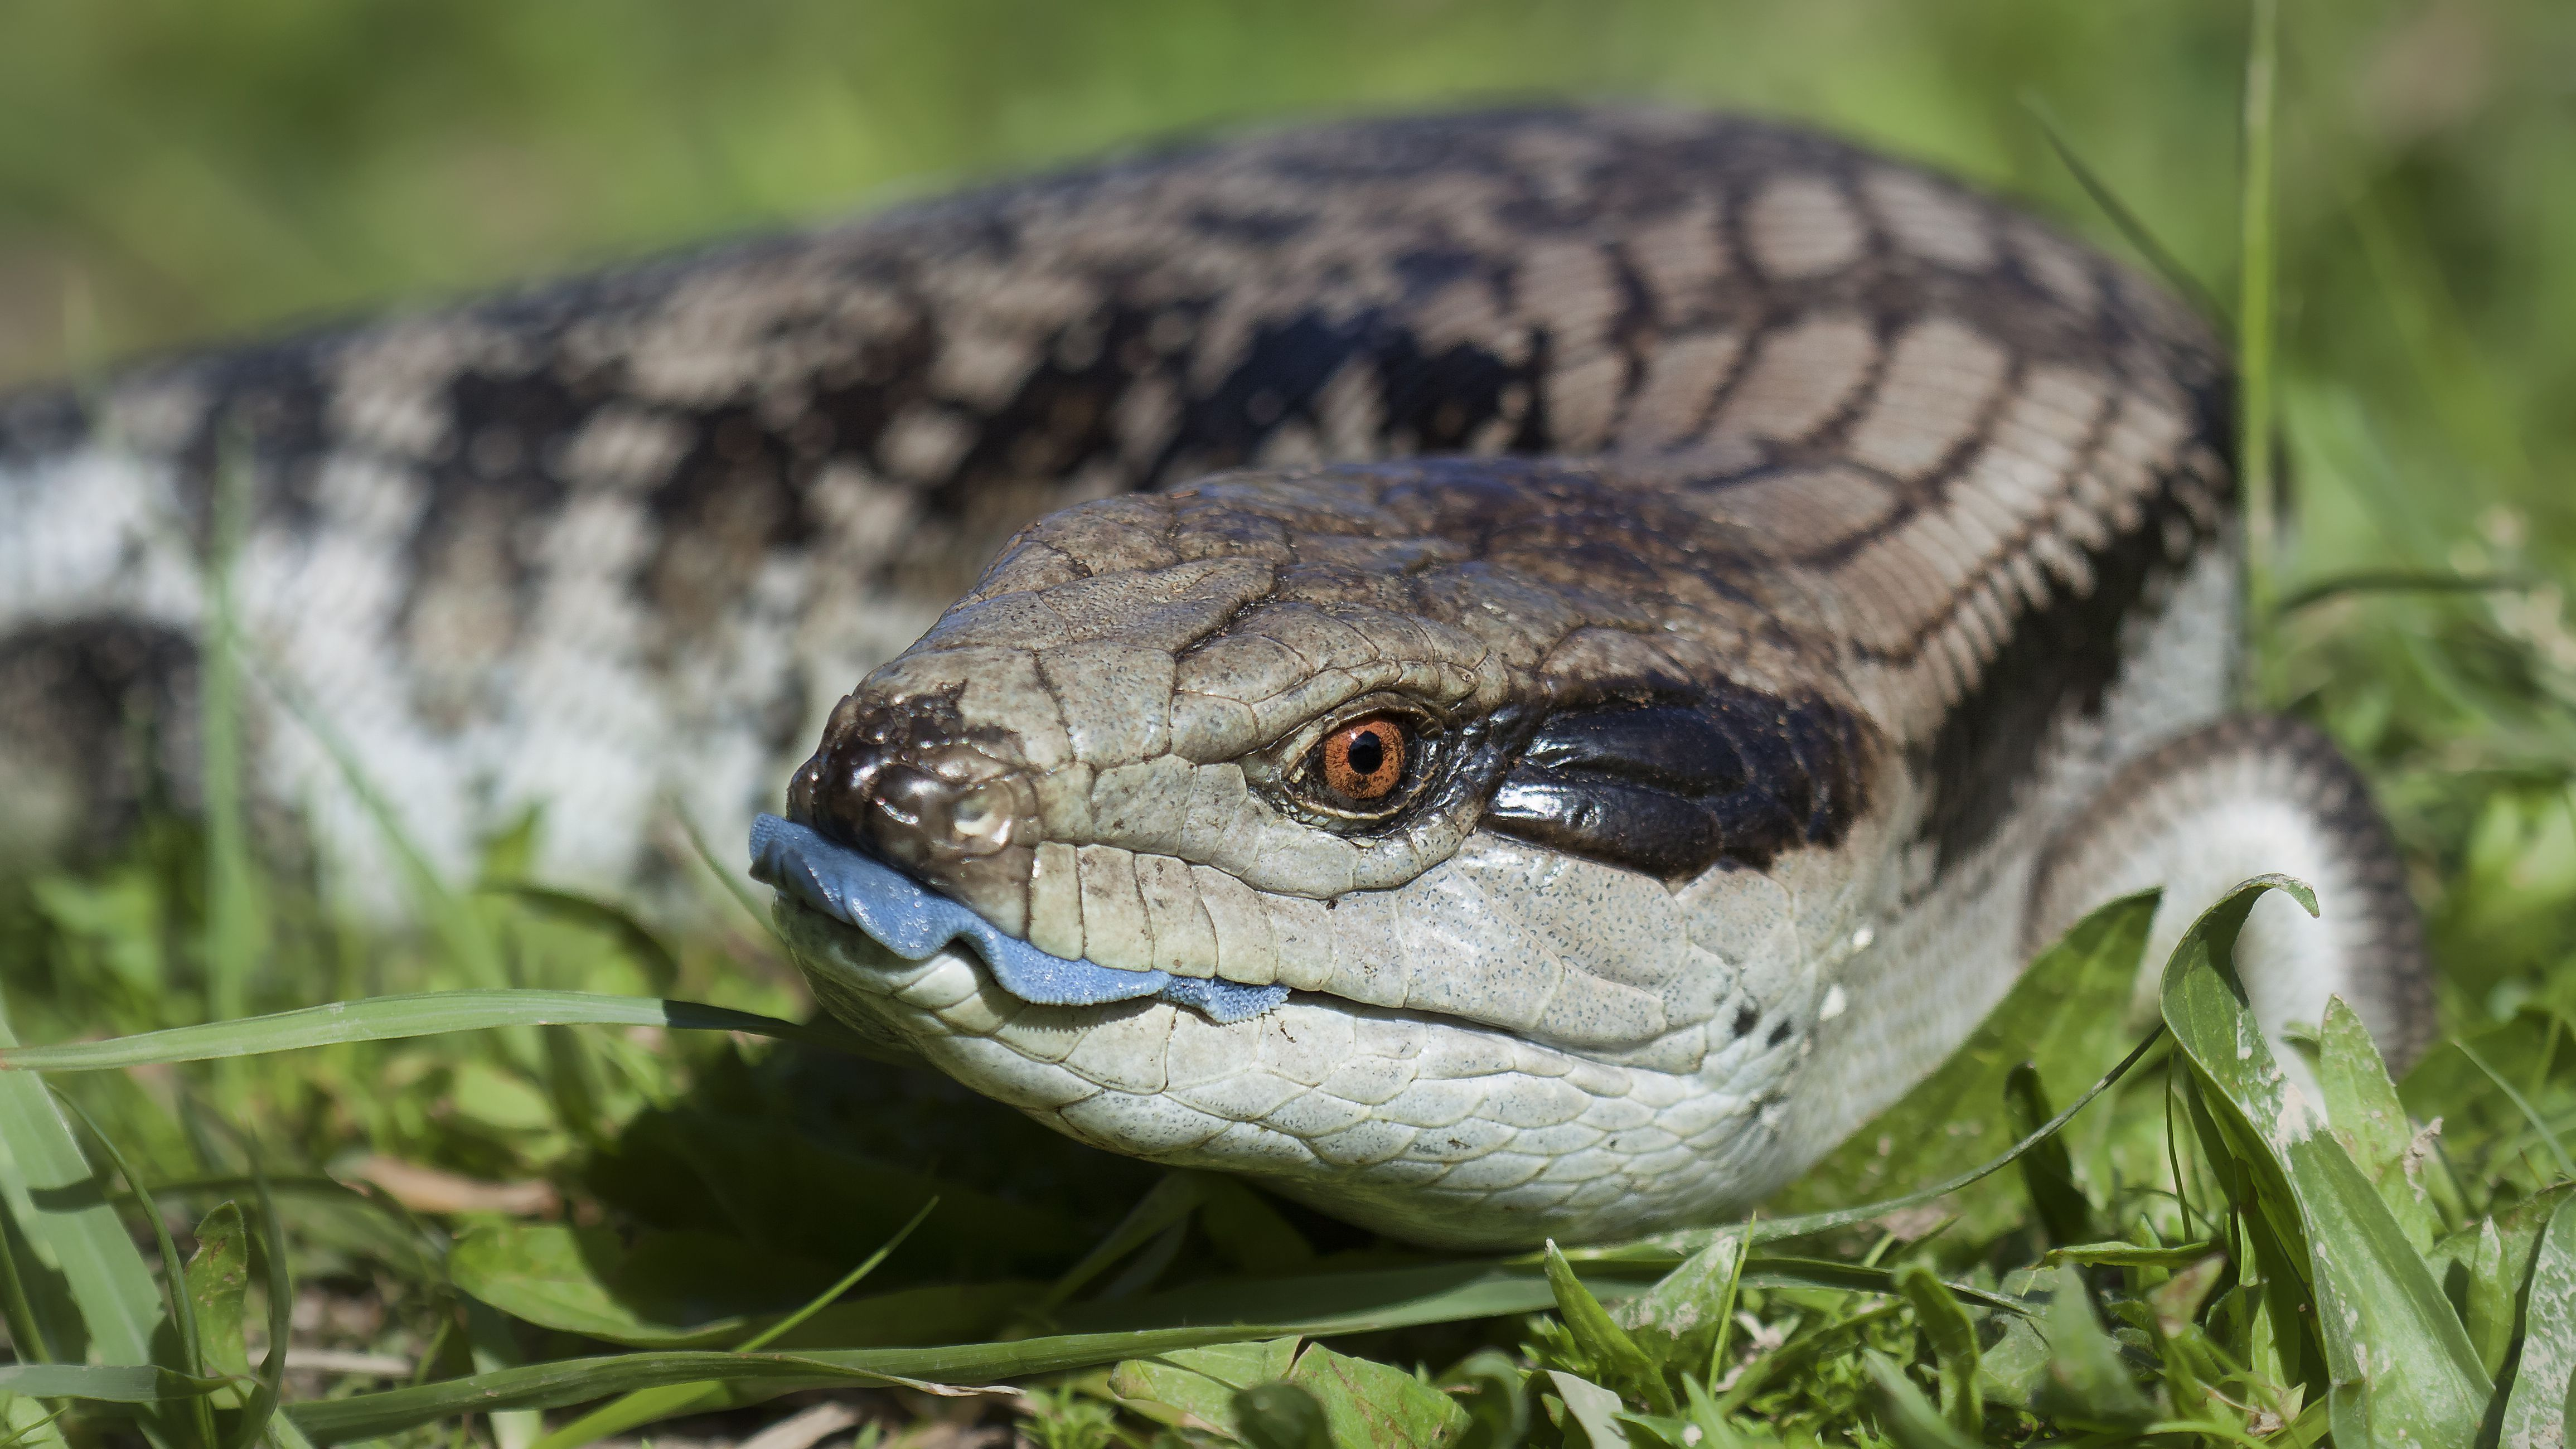 A Guide To Caring For A Pet Blue Tongued Skinks